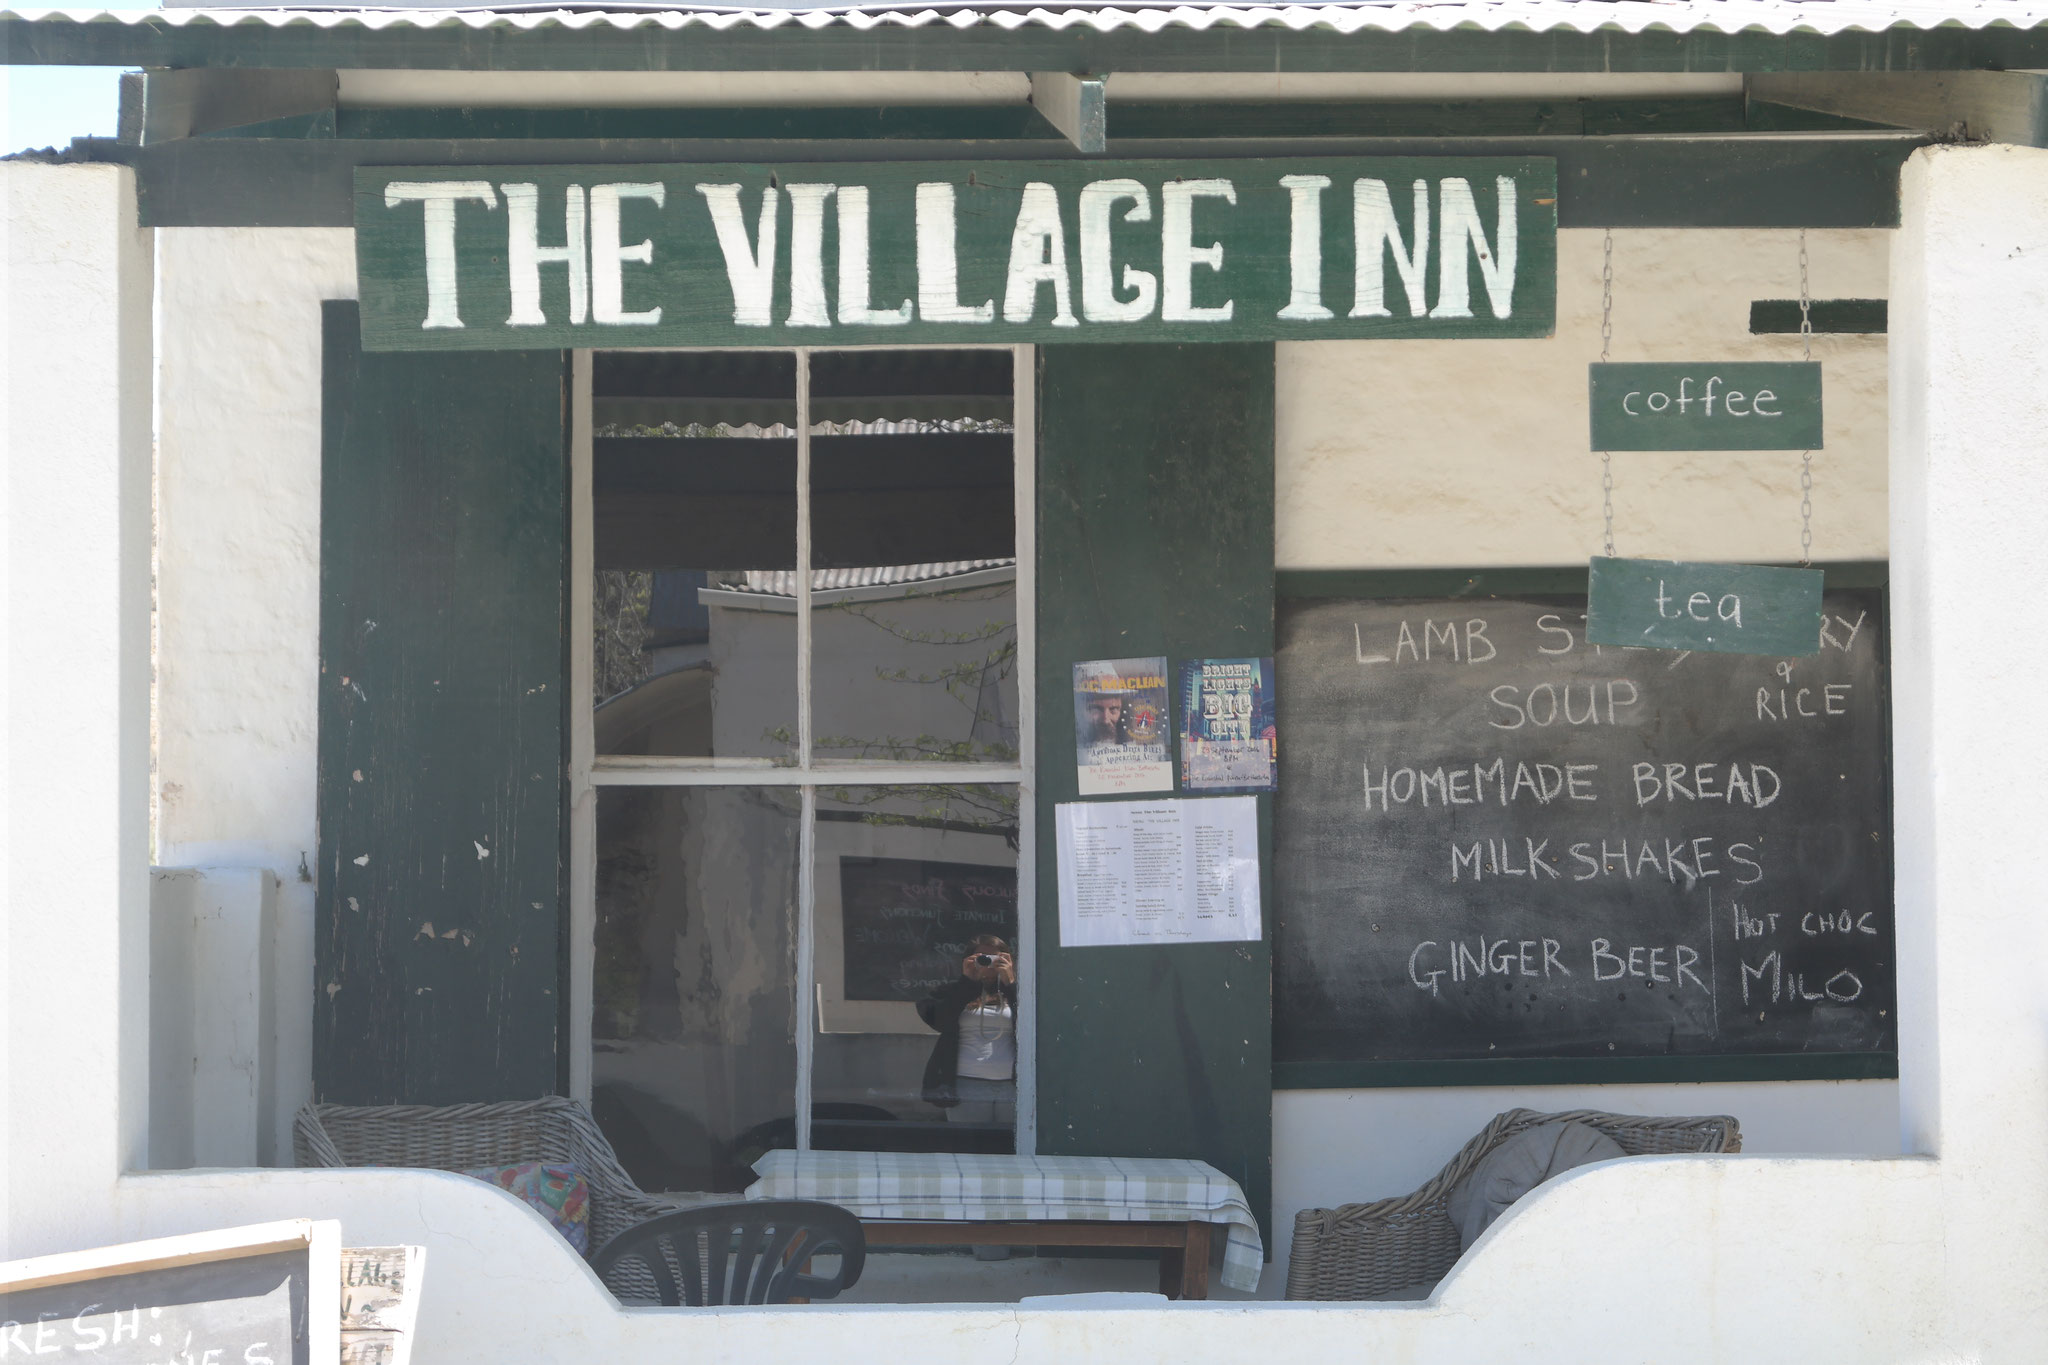 Front view of the Village Inn, Nieu-Bethesda, South Africa.